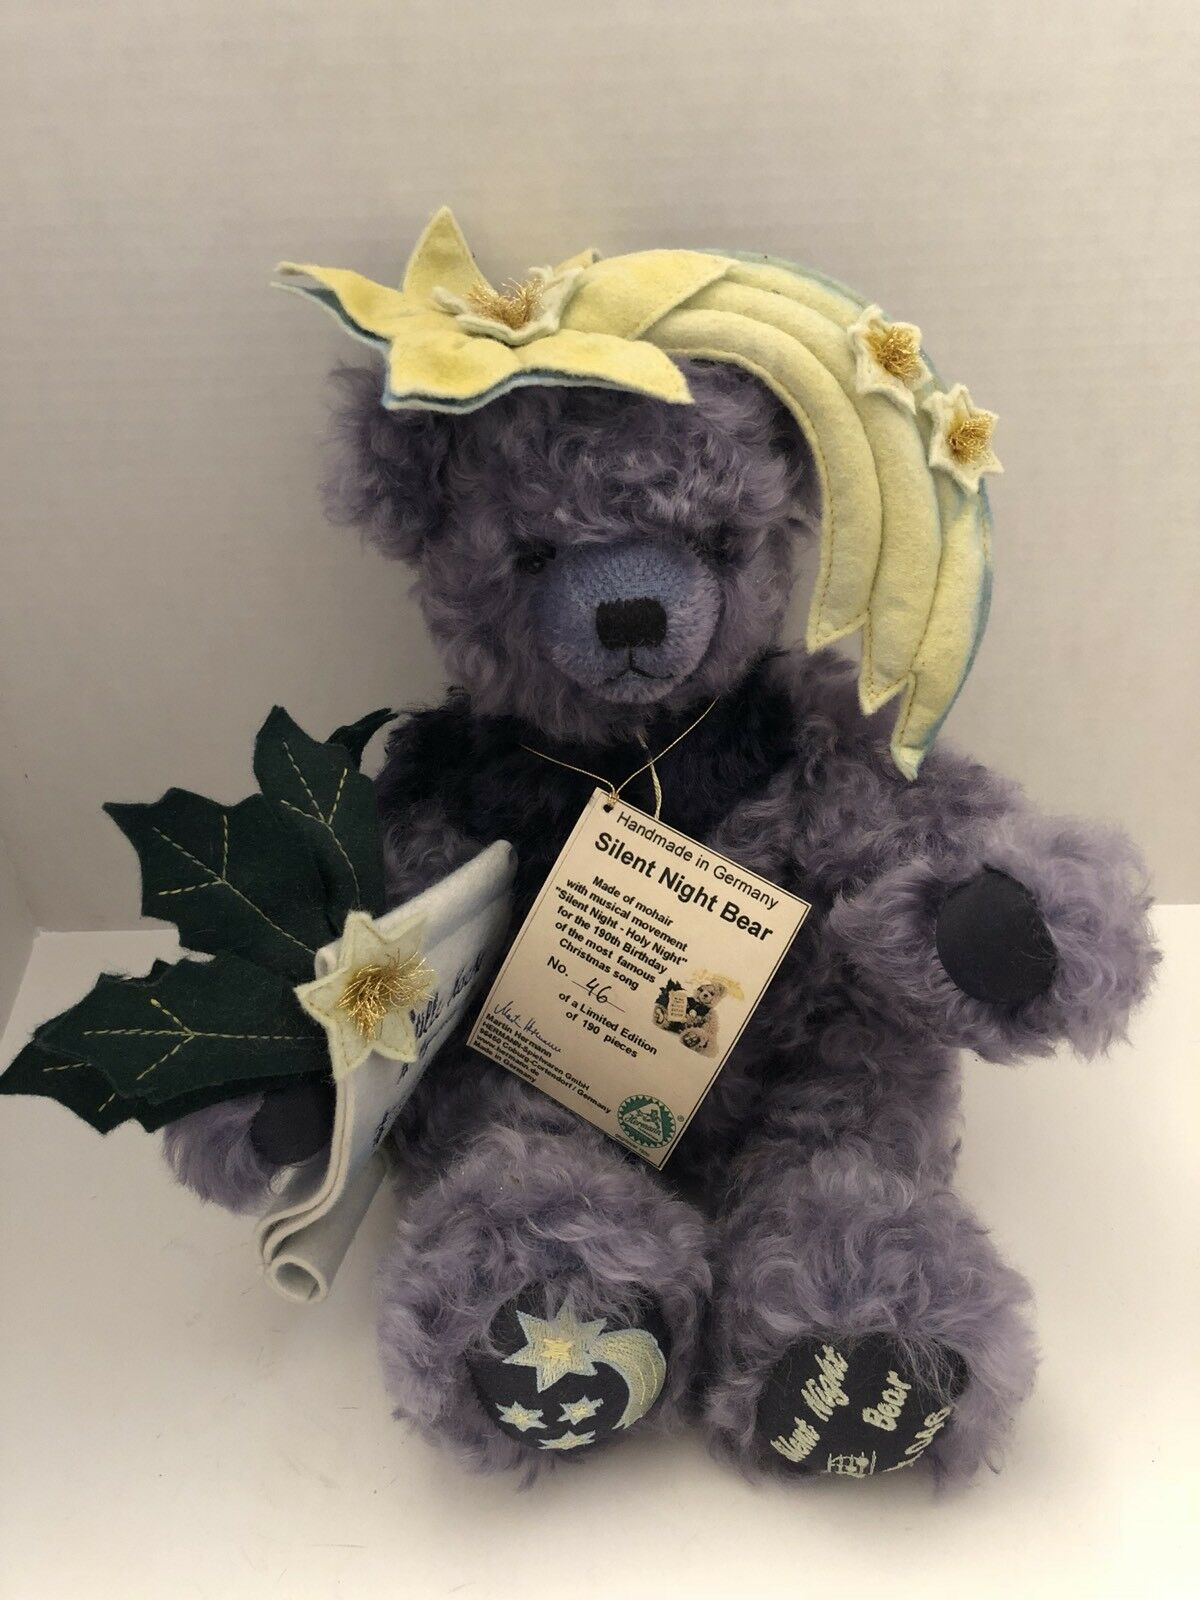 Very Rare Hermann Limited Edition Silent Night Bear Plays Song Handmade Germany